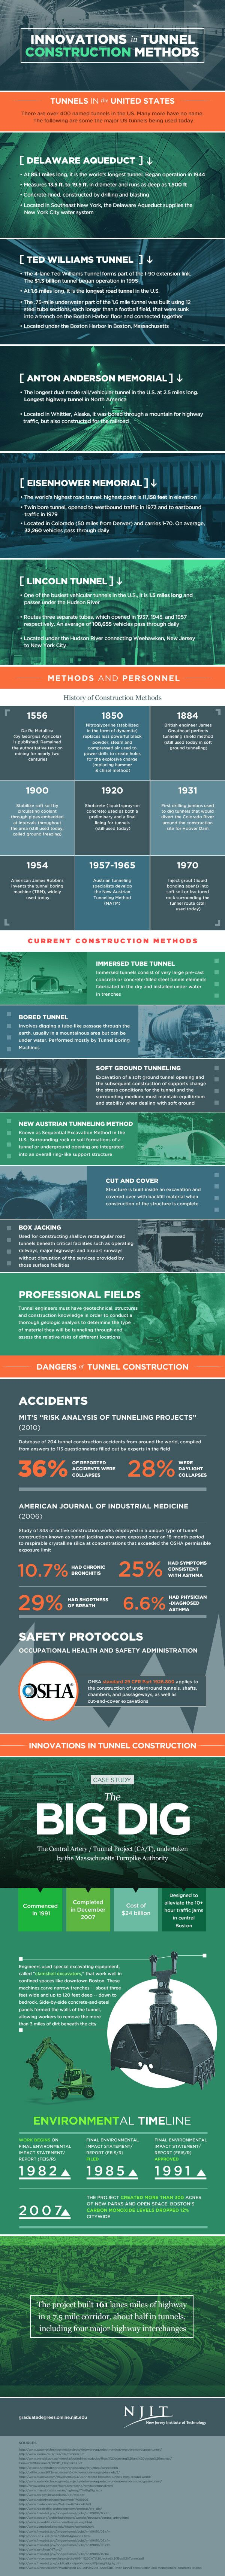 Innovations in tunnel construction